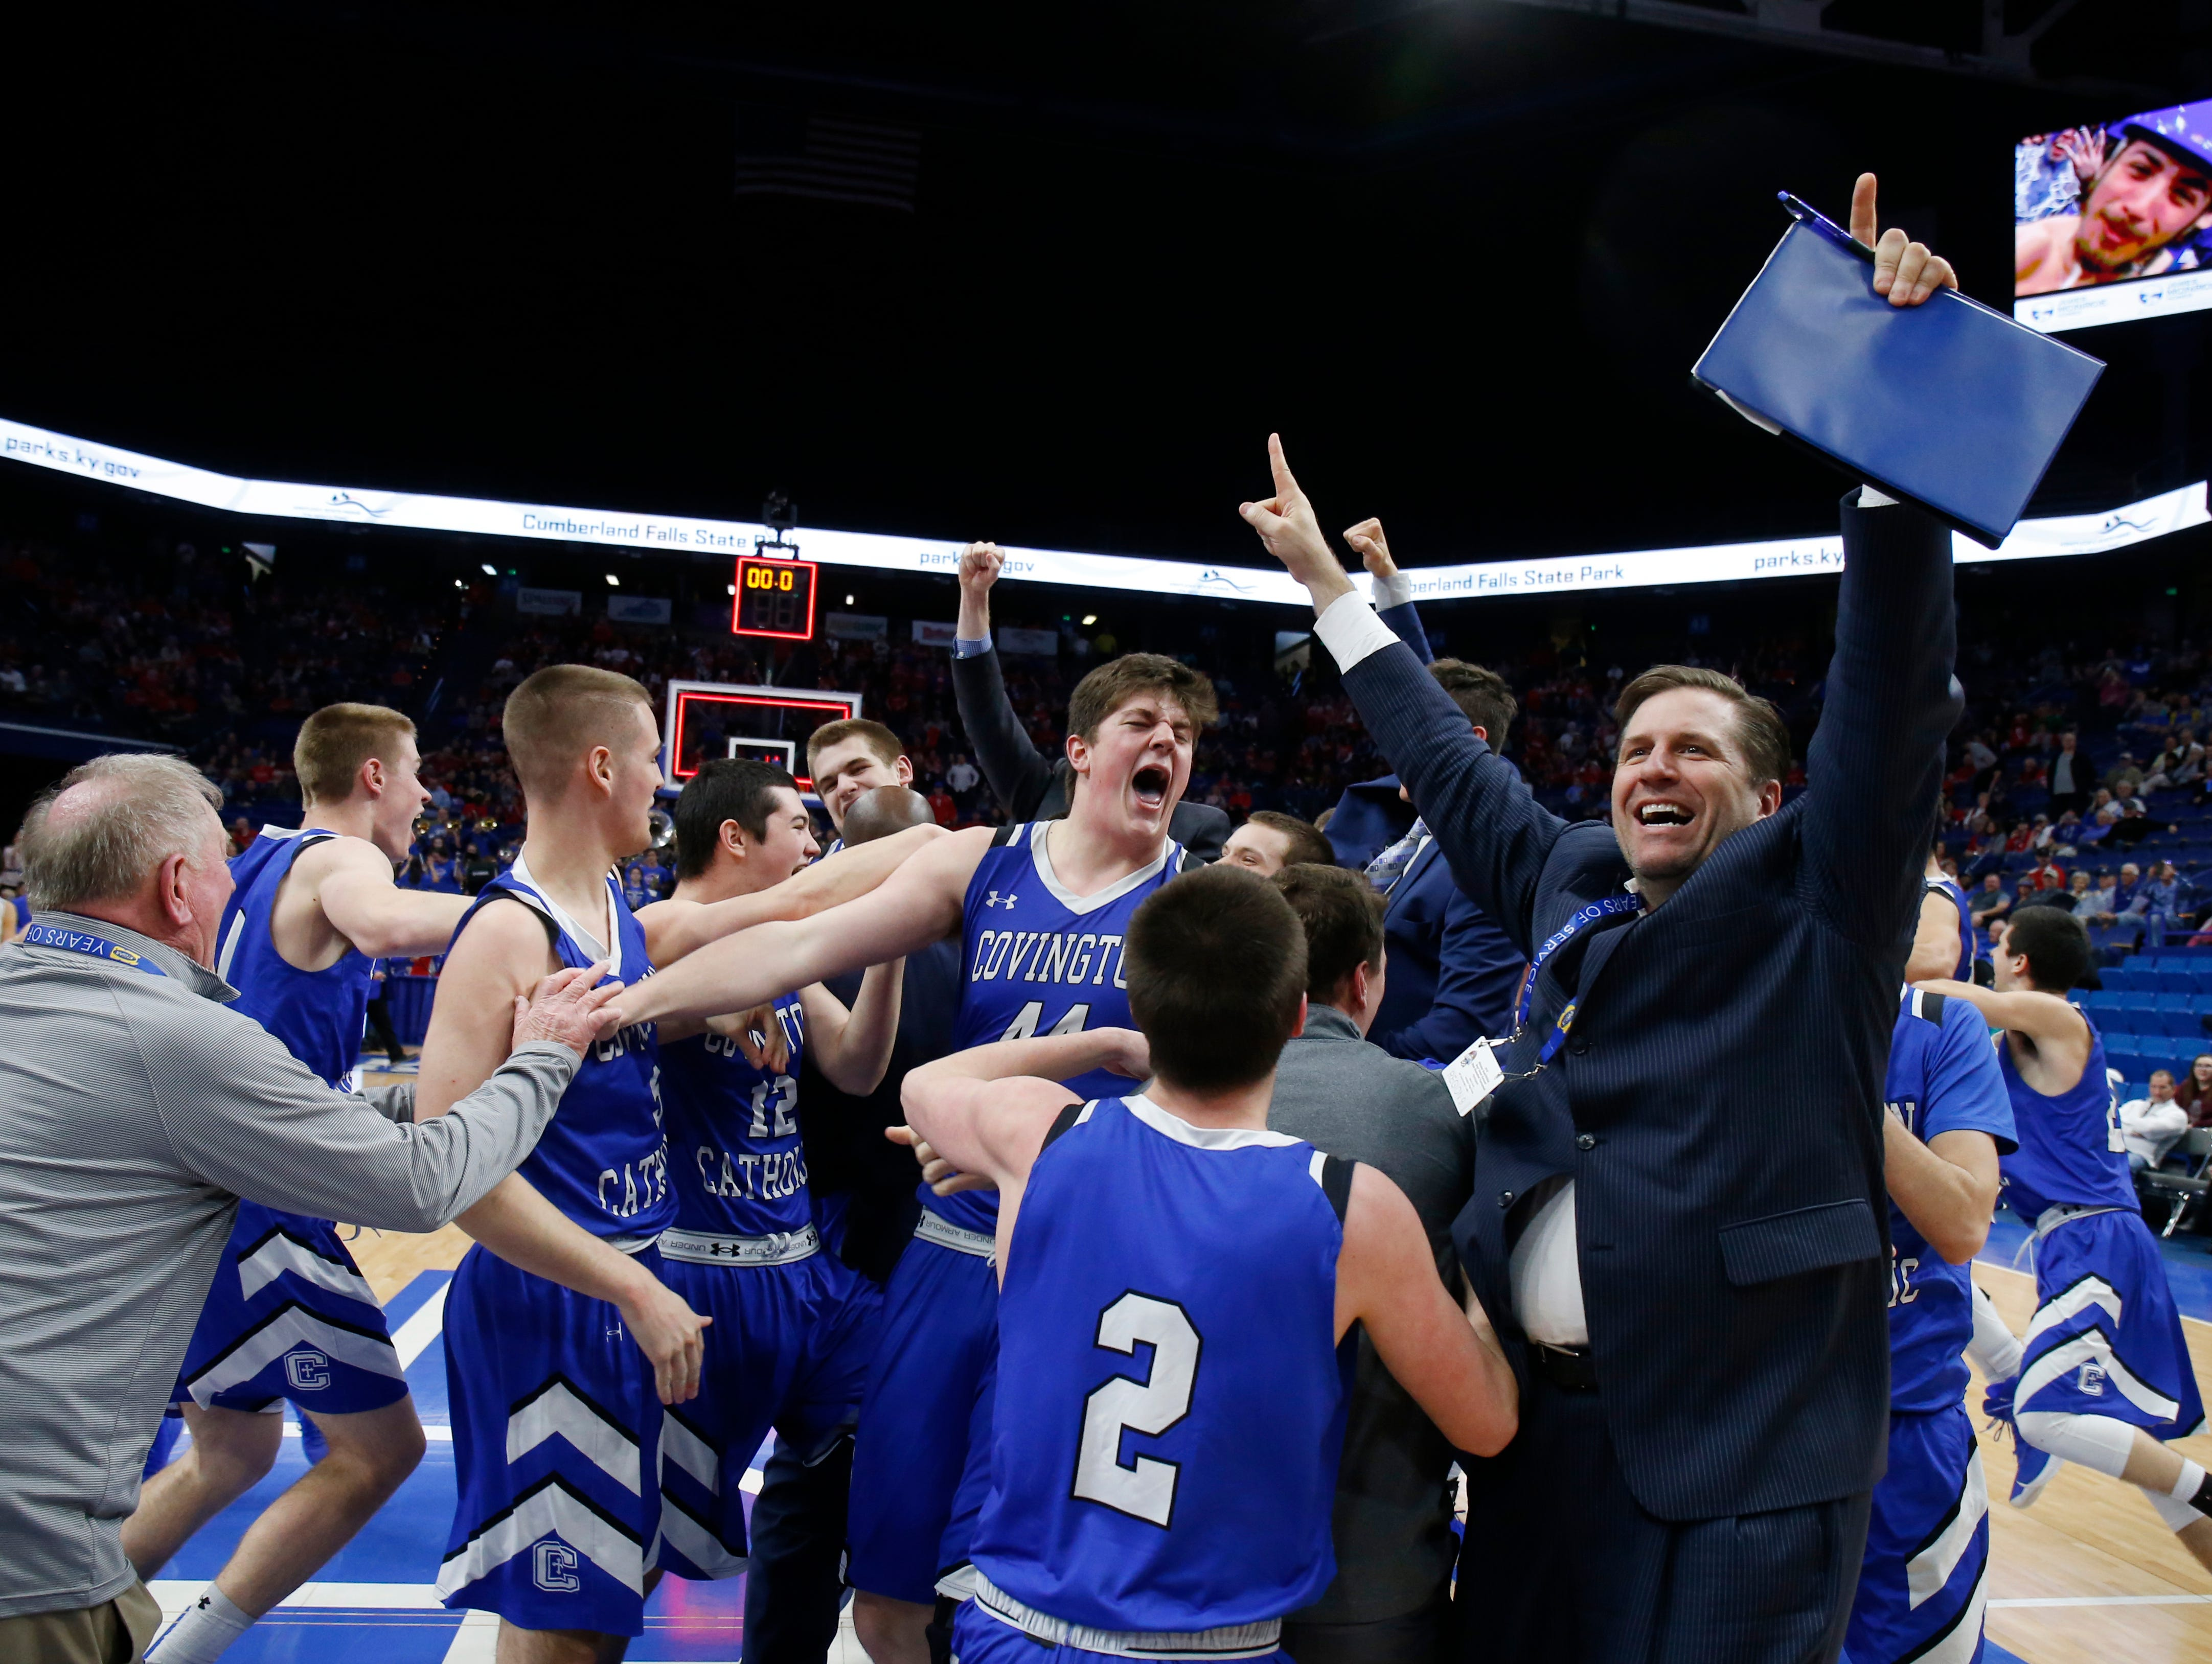 Covington Catholic celebrates their win over Scott County in the championship game of the Whitaker Bank/KHSAA Boys' Sweet 16 basketball tournament played at Rupp Arena in Lexington, Ky. Sunday March 18, 2018.